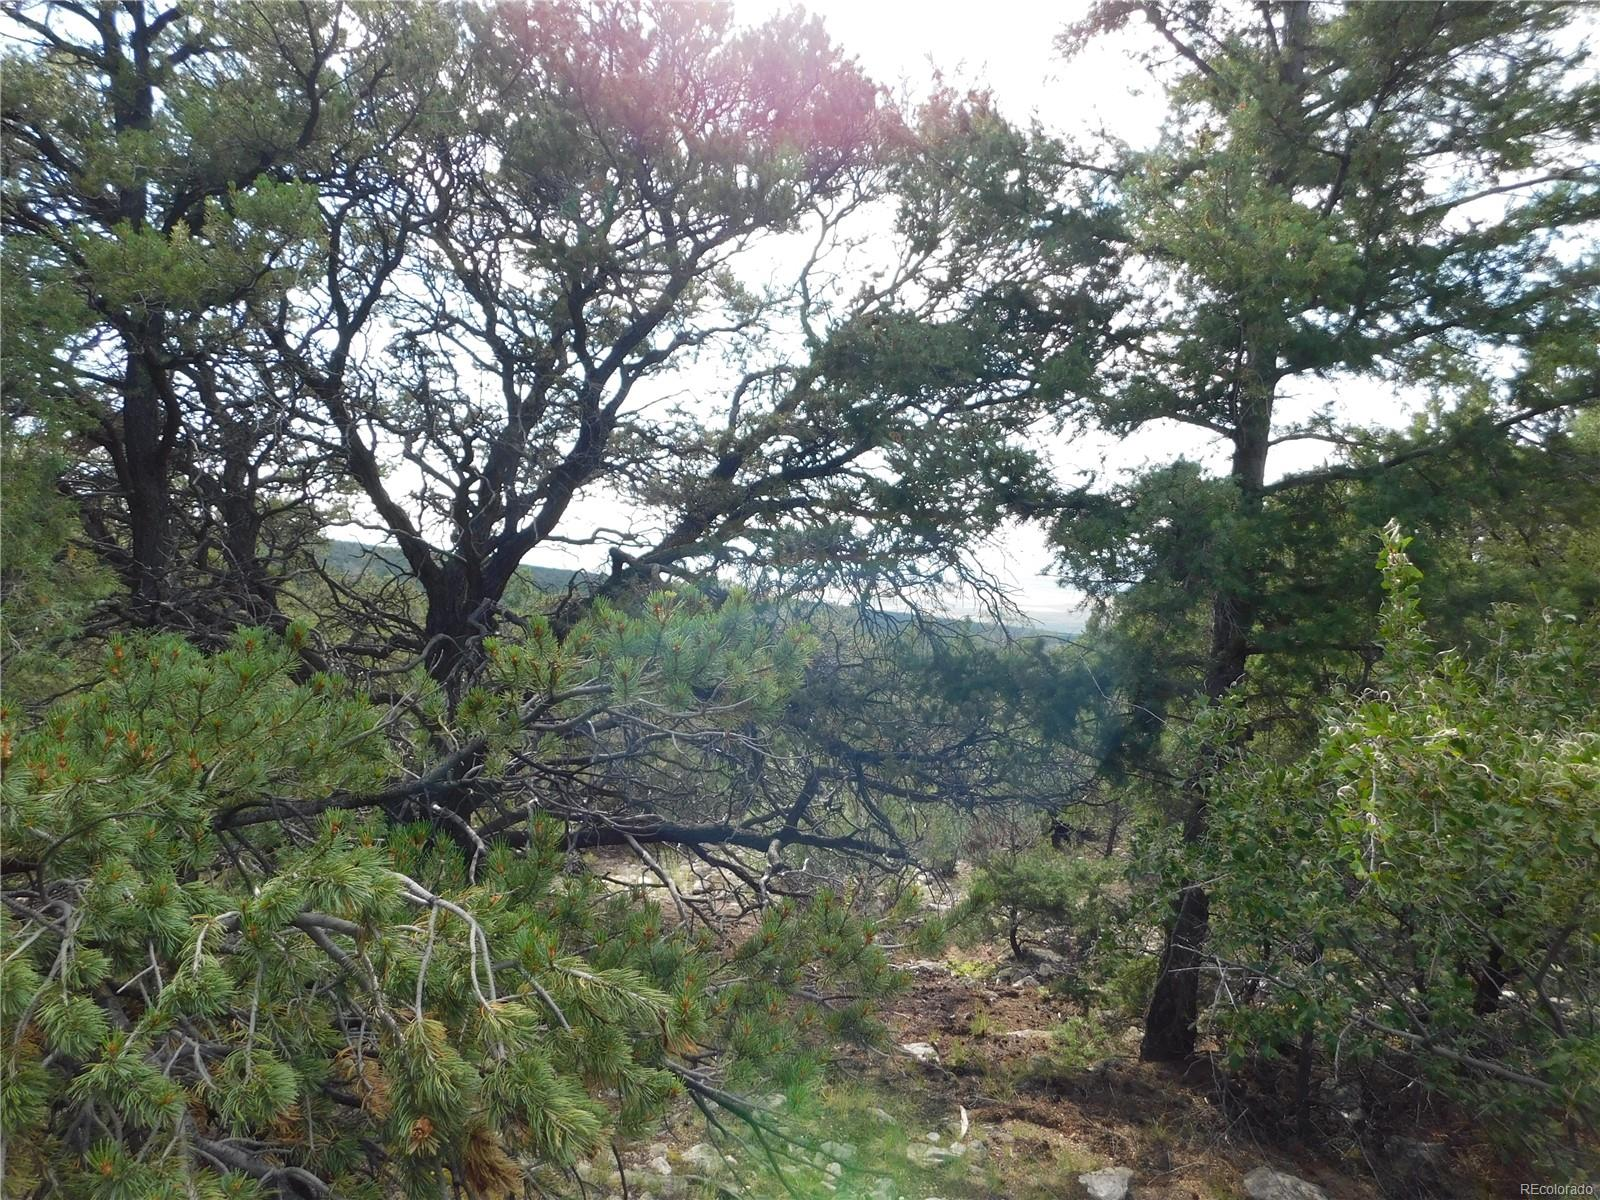 304 Arrastre Road, Mosca, CO 81146 - Mosca, CO real estate listing